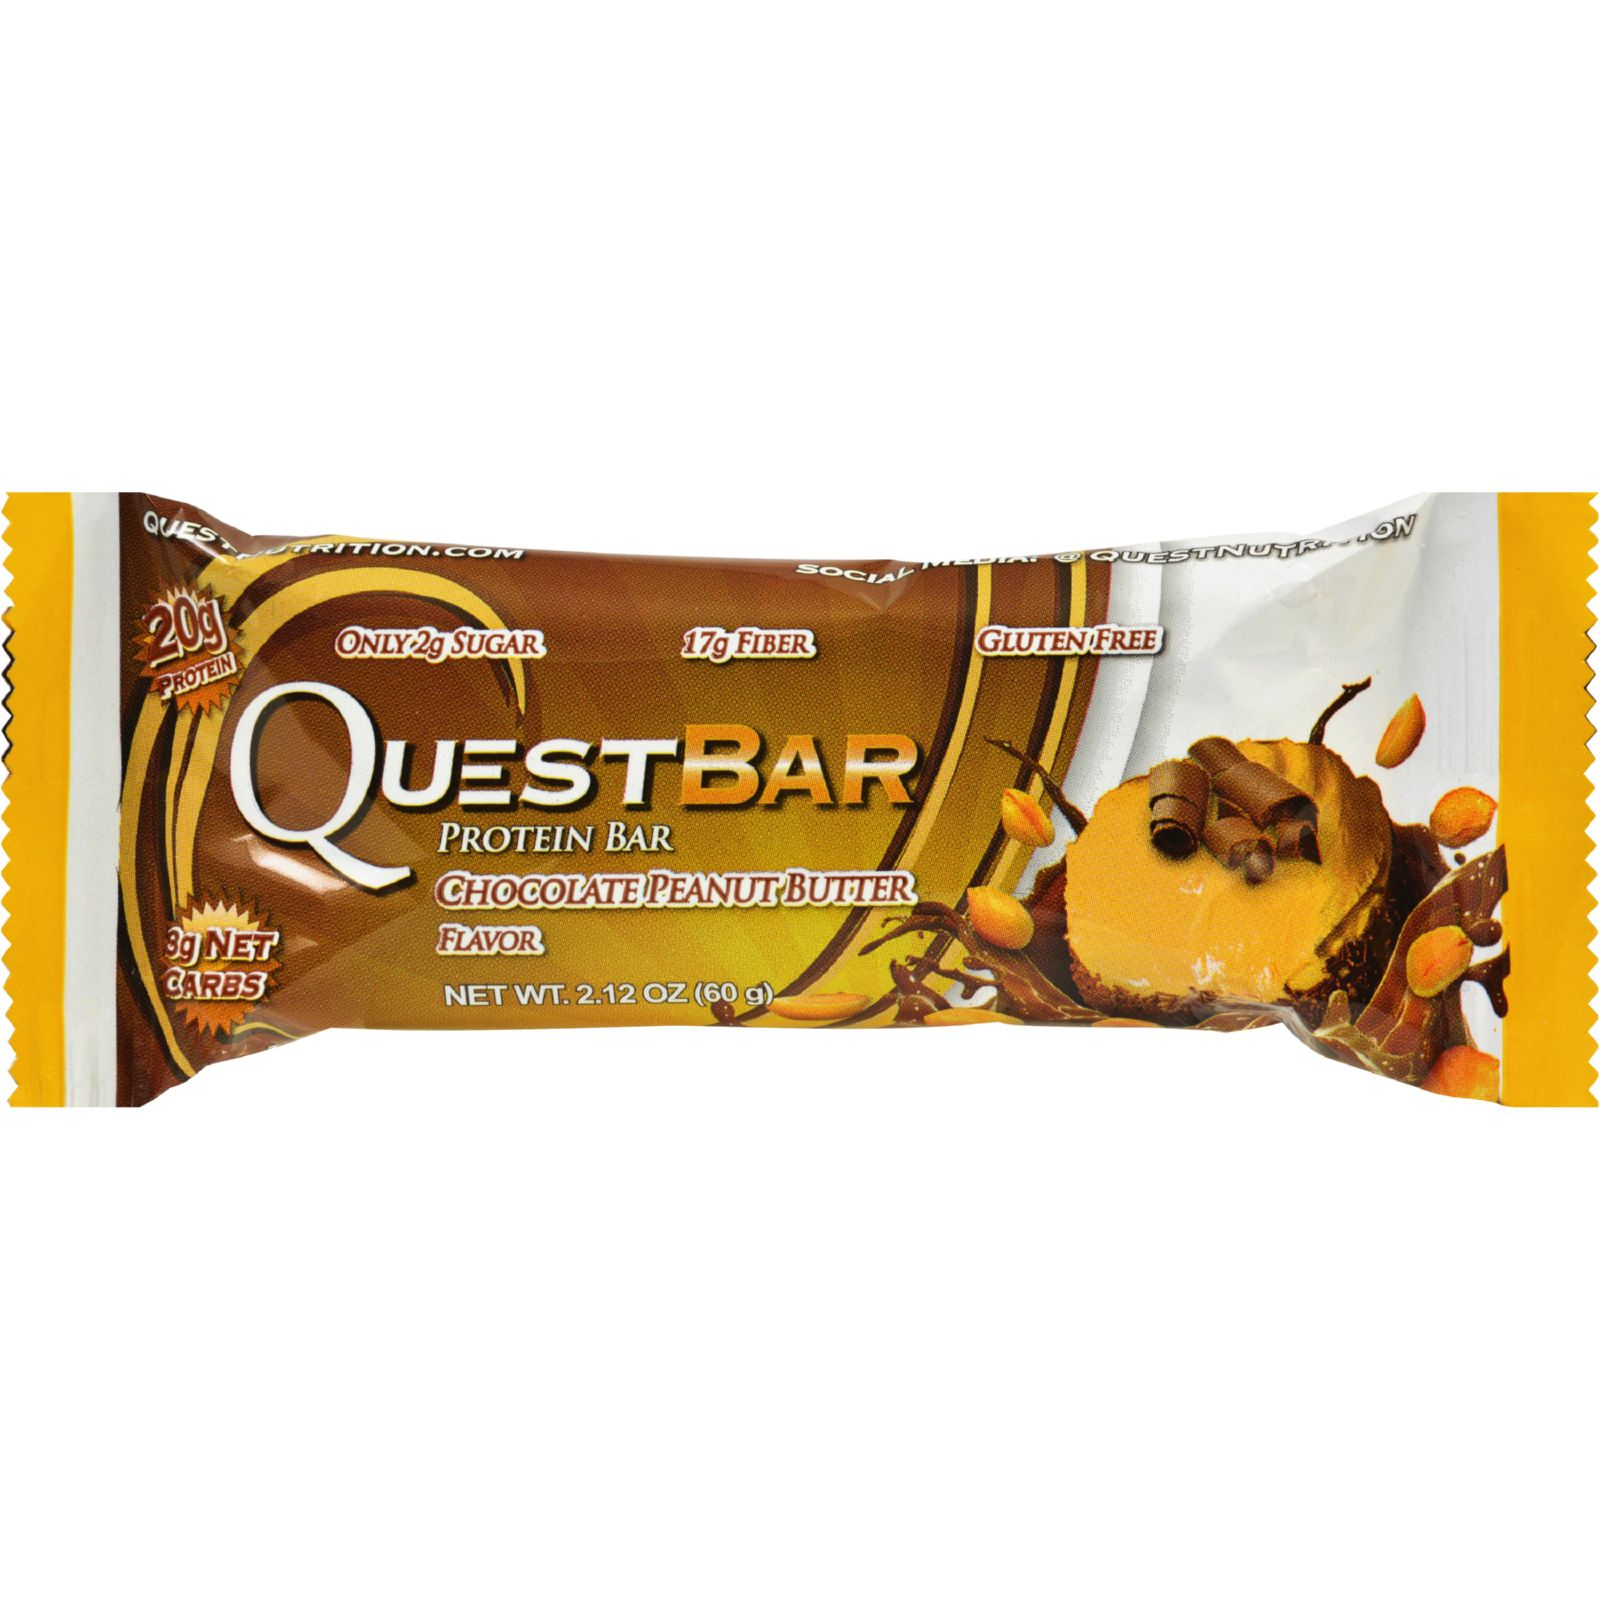 Quest Nutrition Protein Bars - Chocolate Peanut Butter - 2.1 oz